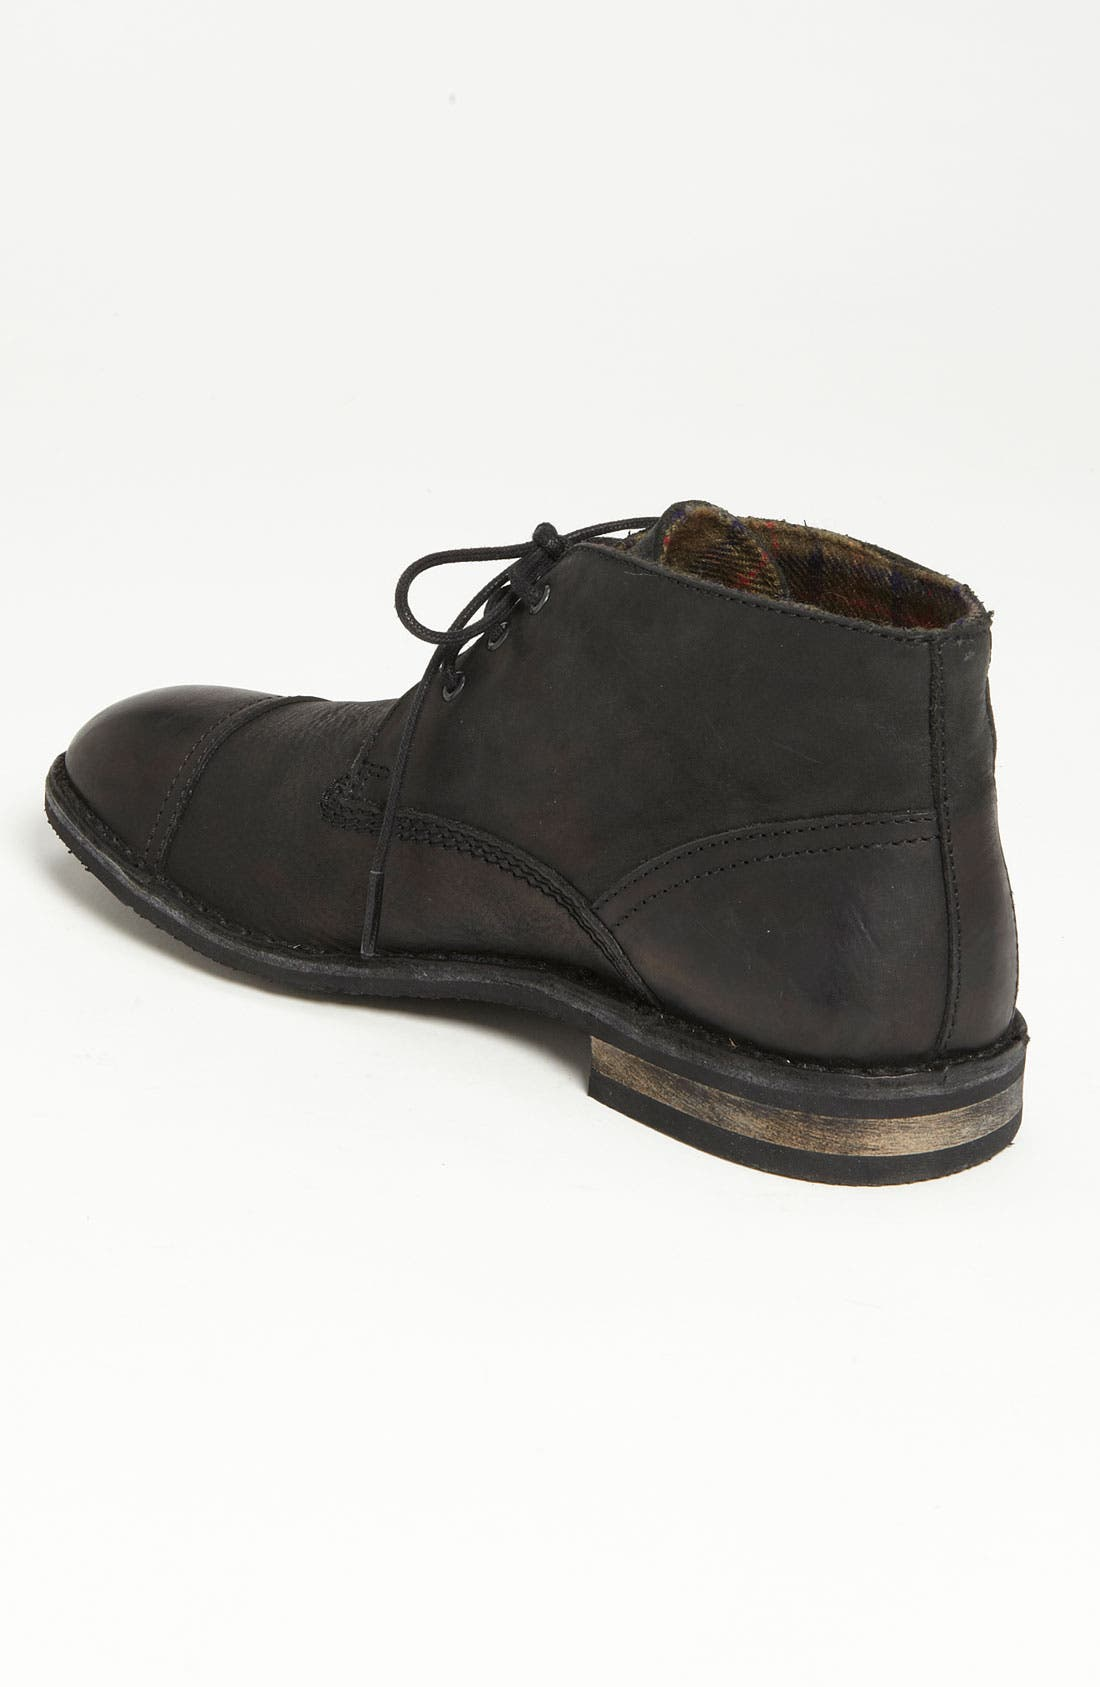 Alternate Image 2  - Kickers 'Edgo' Chukka Boot (Online Only)